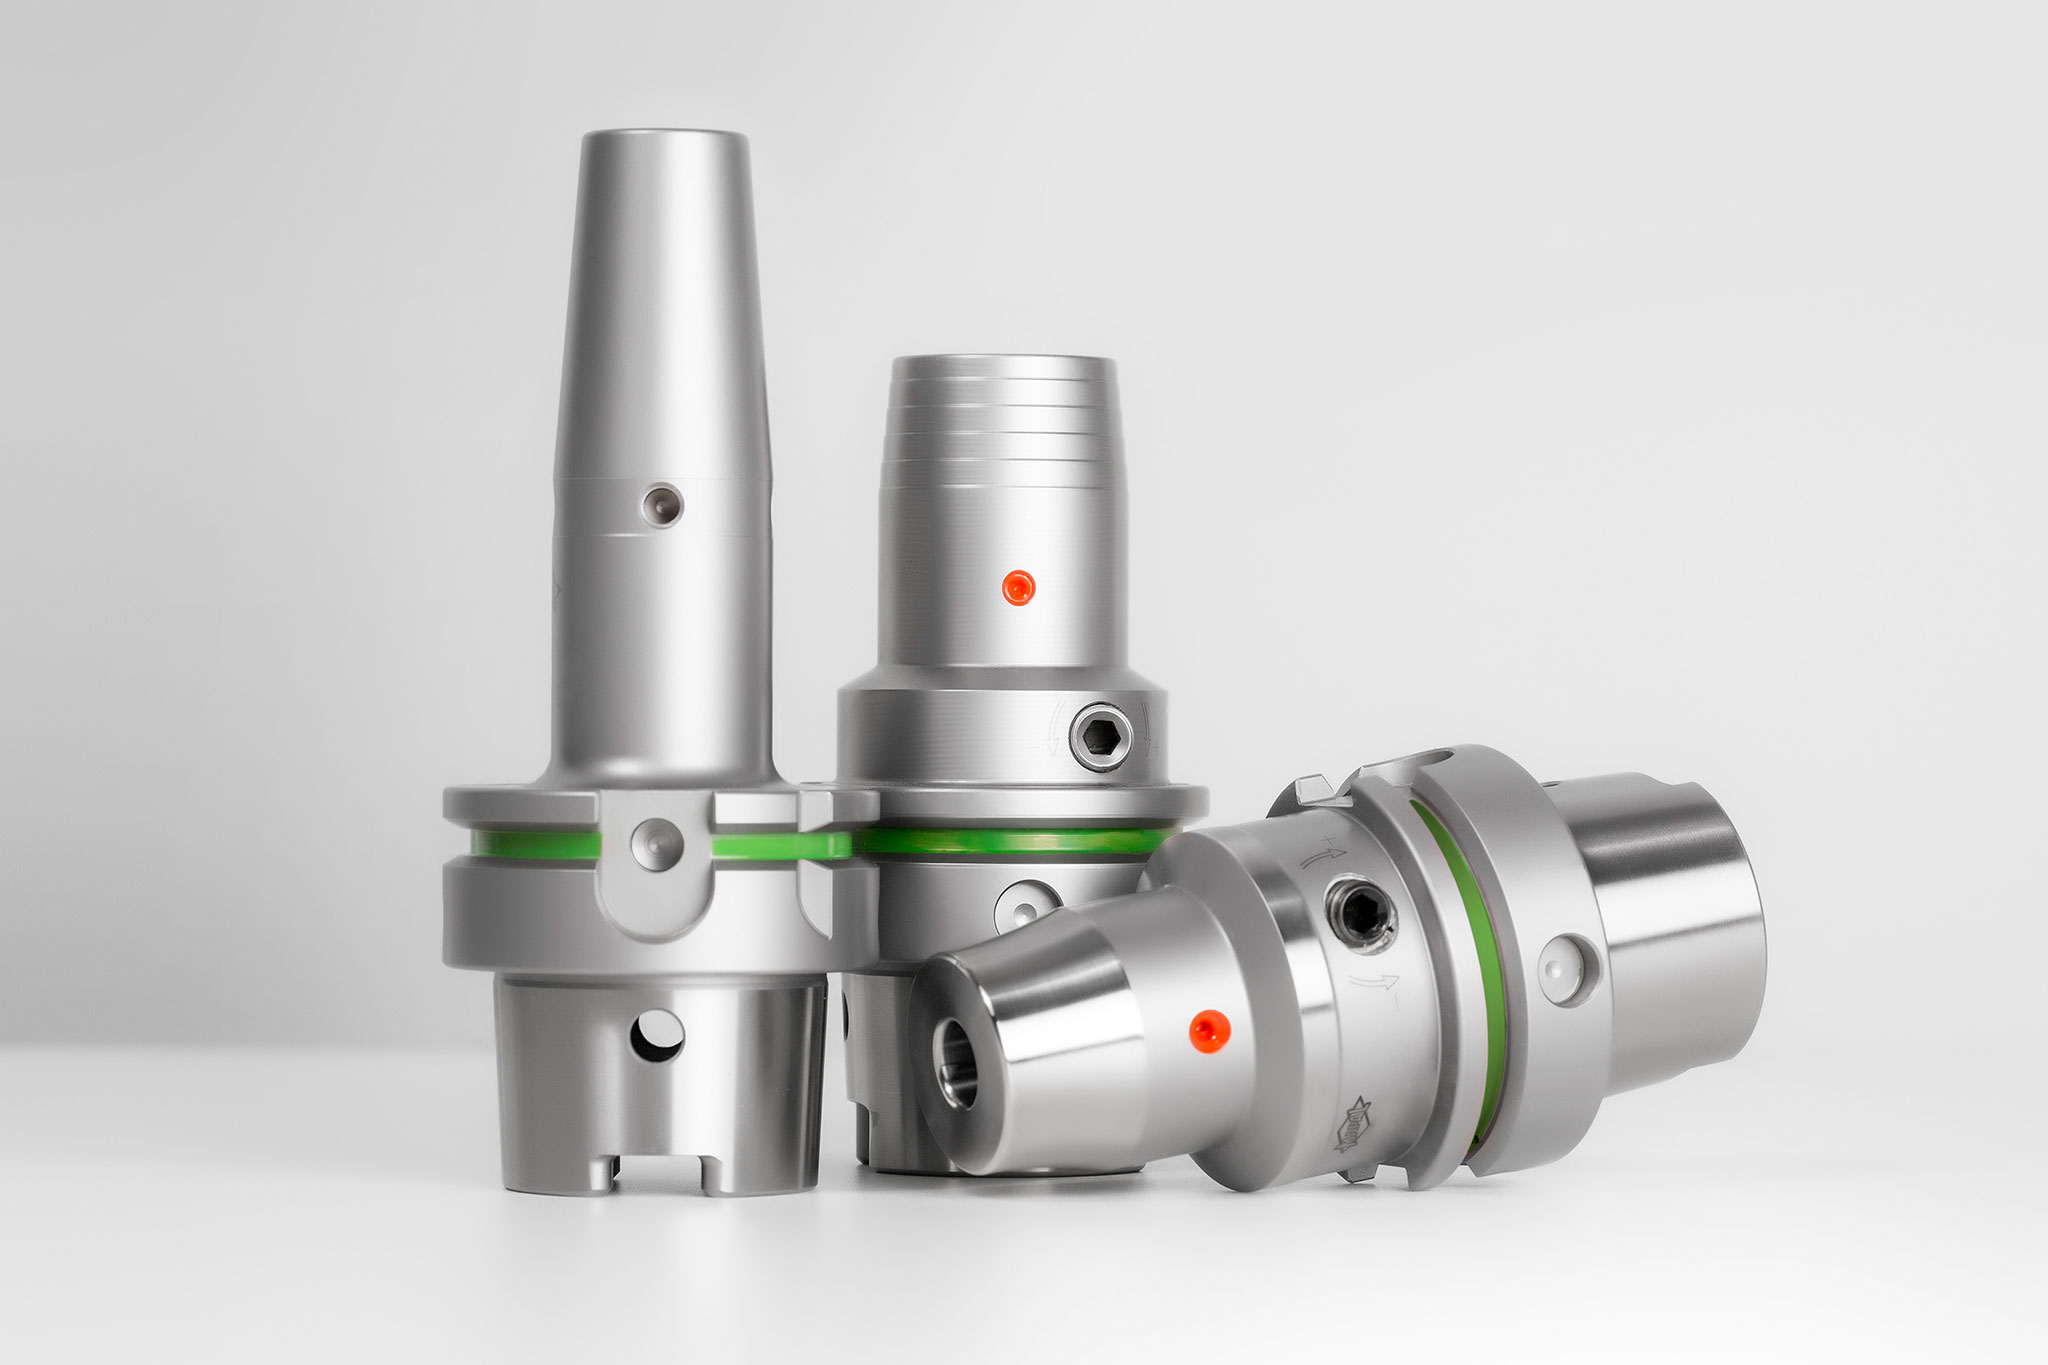 Various chucks suitable for minimum quantity lubrication machining